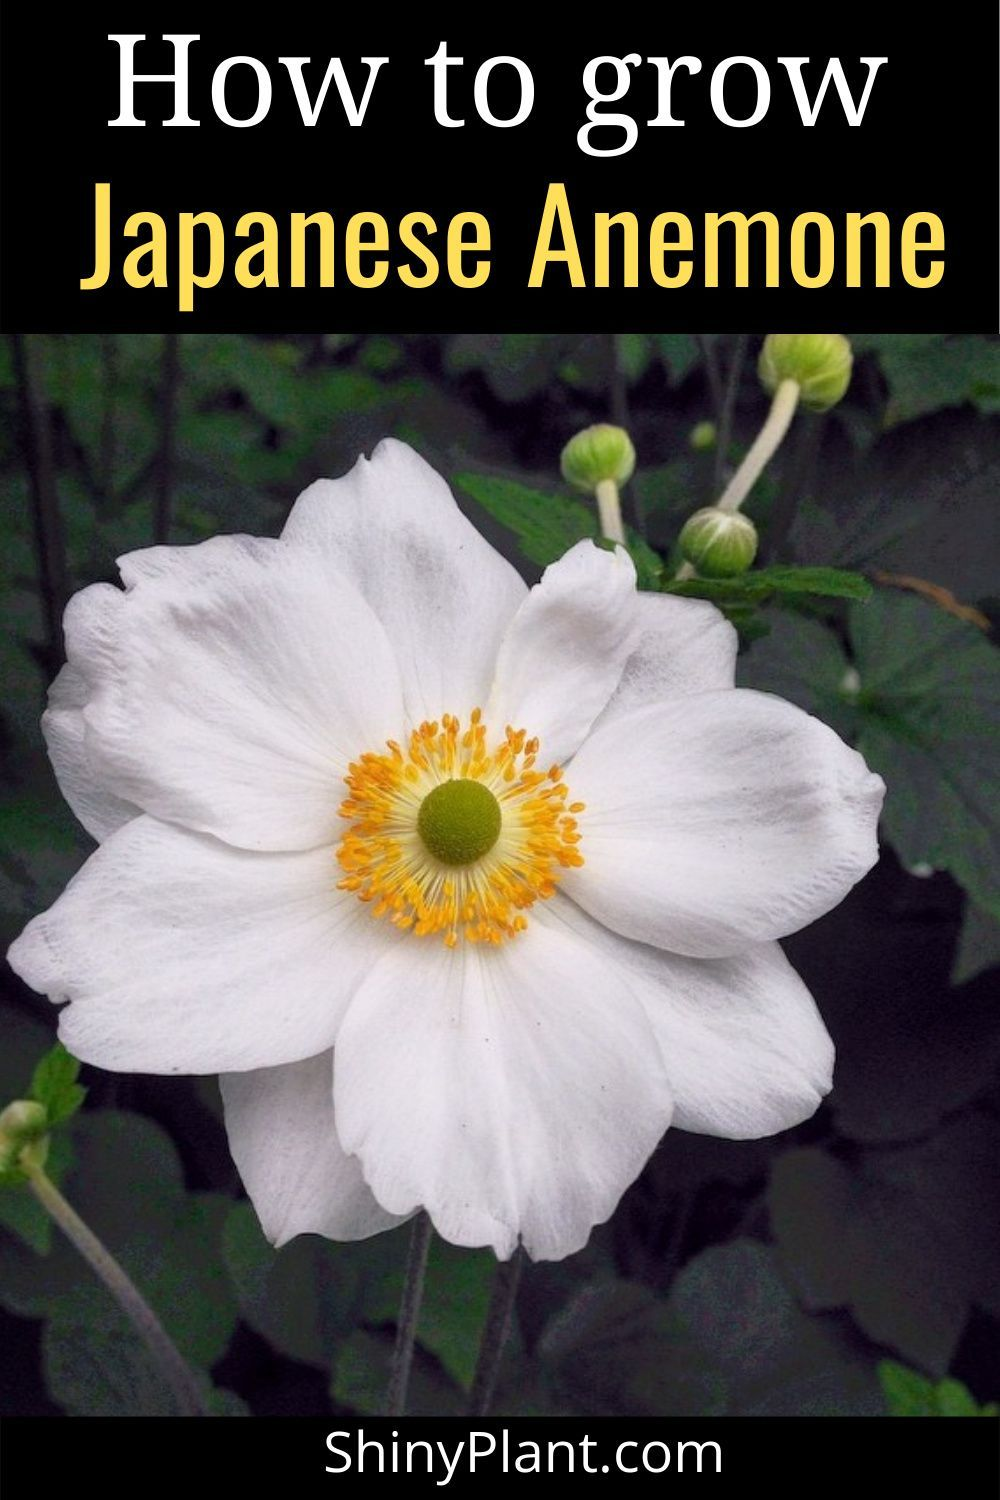 How To Grow Japanese Anemone In 2020 Perennial Plants Japanese Anemone Plants